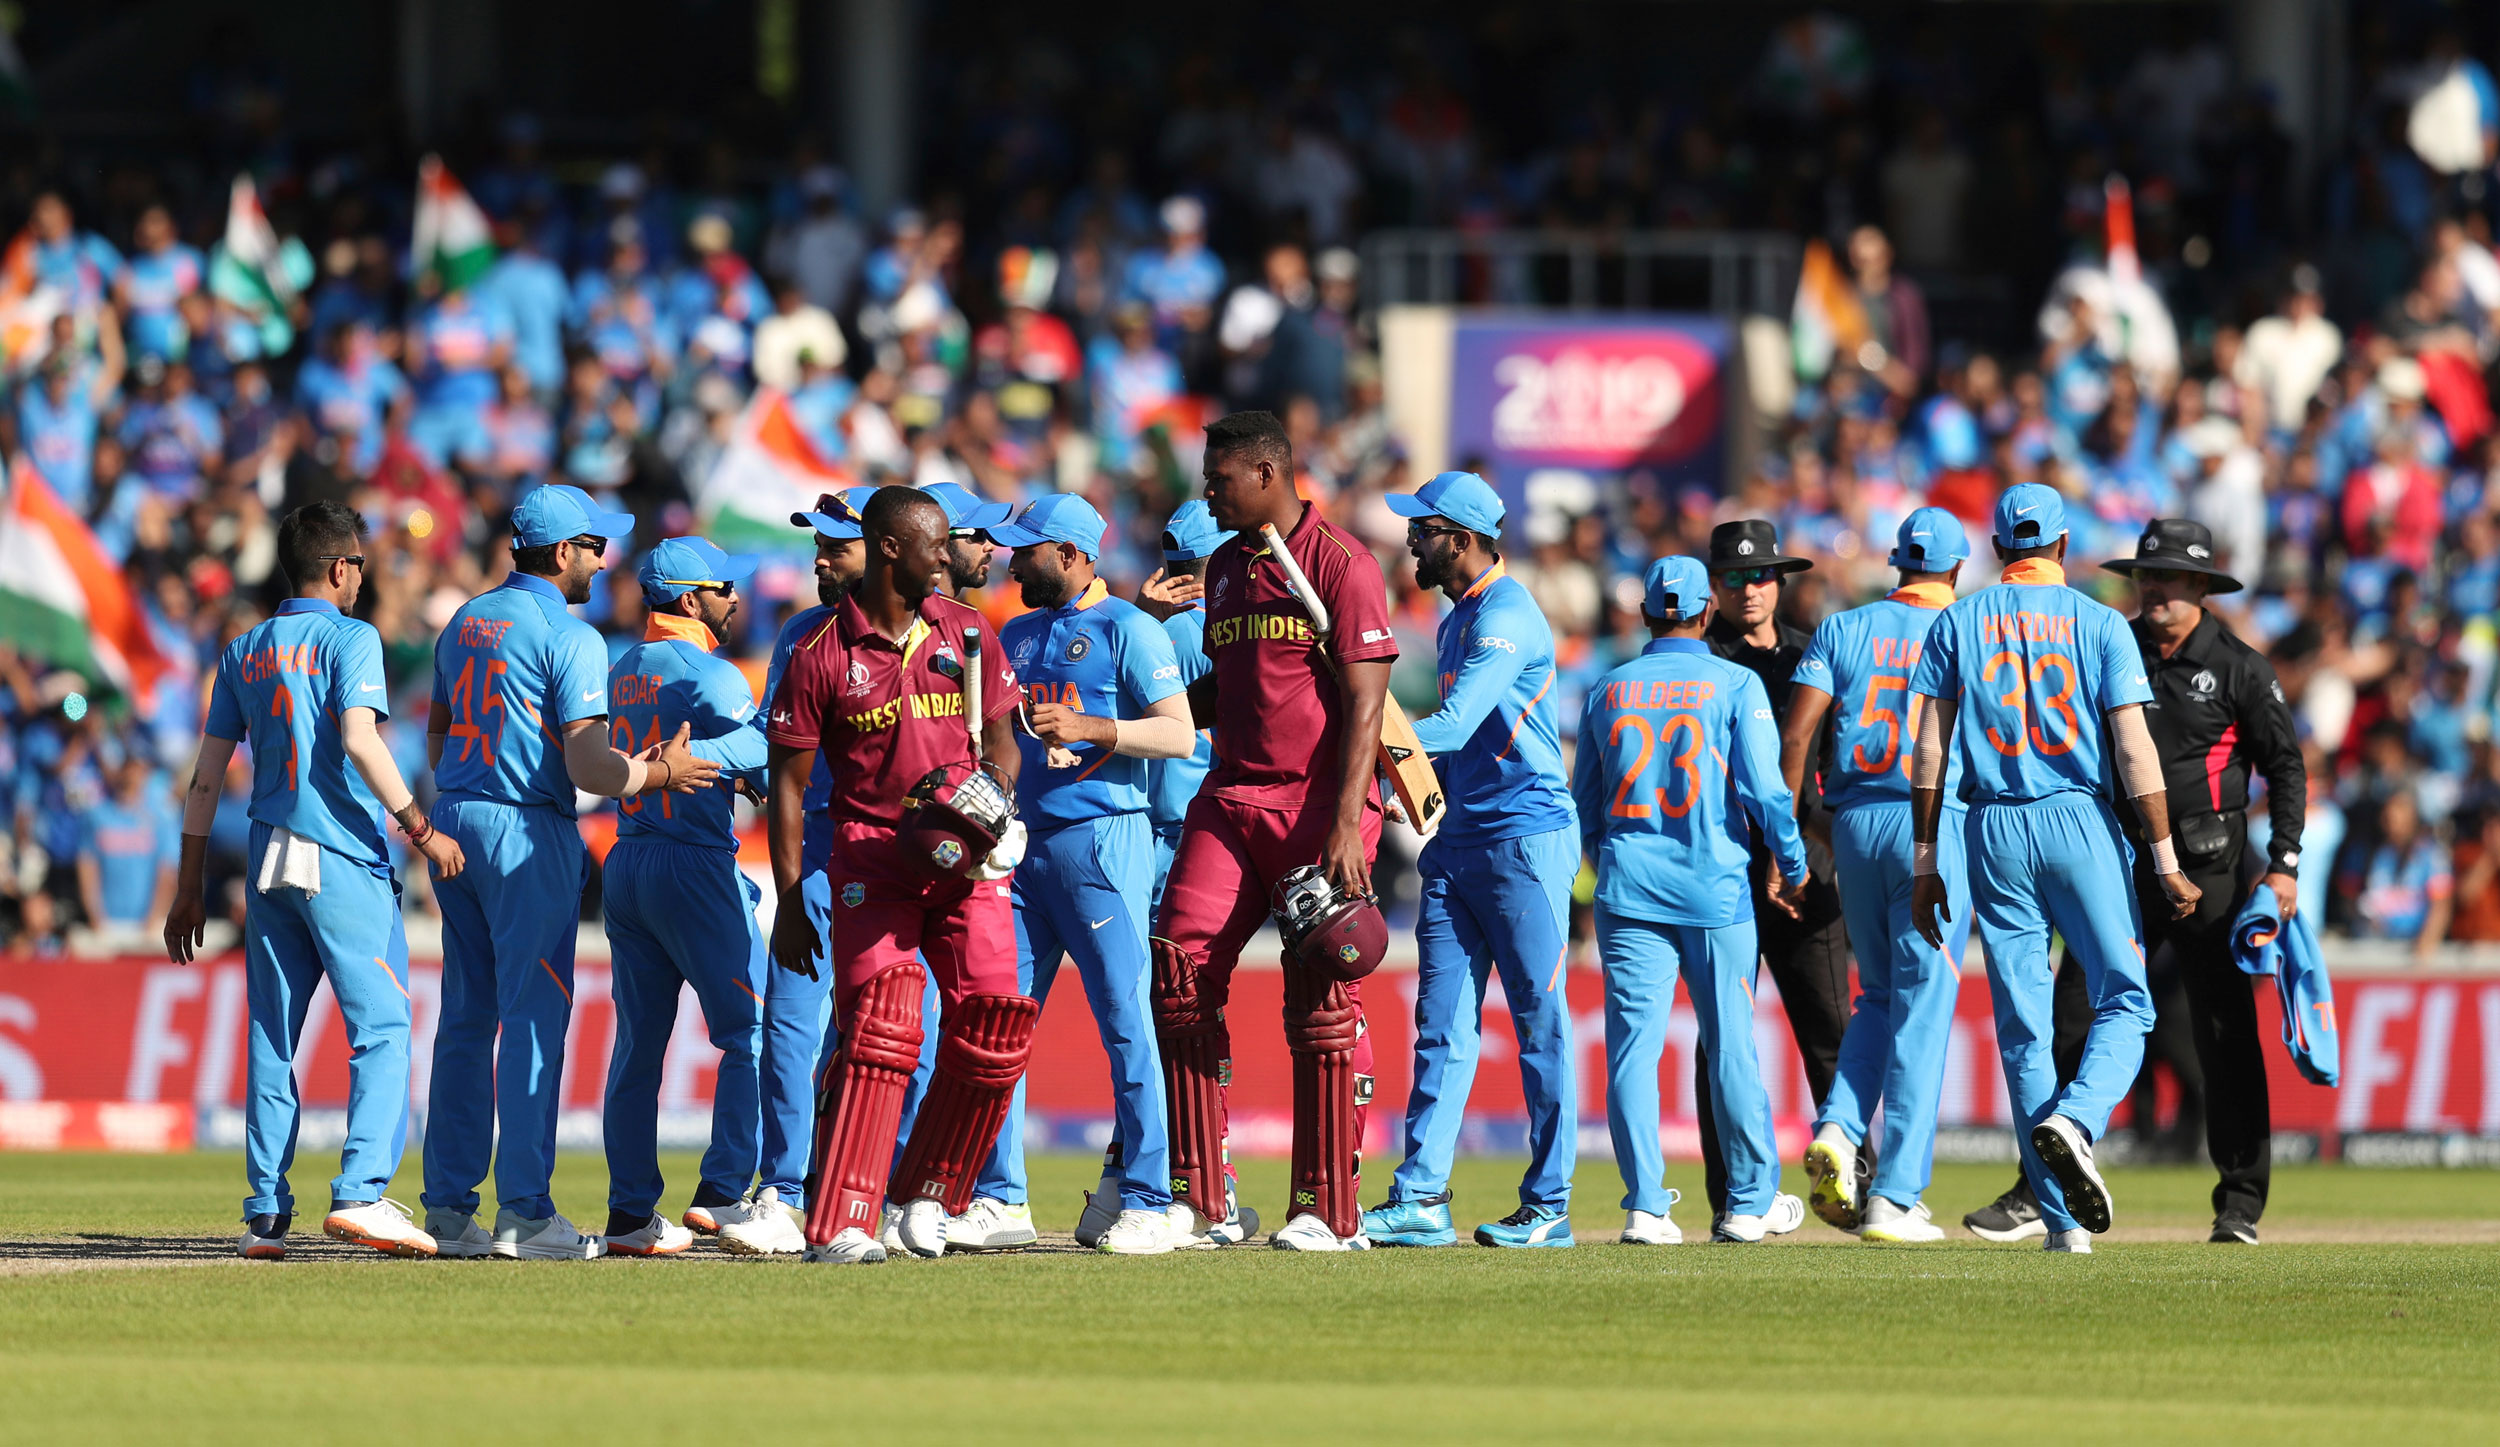 Indian and West Indian cricketers converge after their ICC Cricket World Cup match at Old Trafford in Manchester, England, on June 27, 2019.